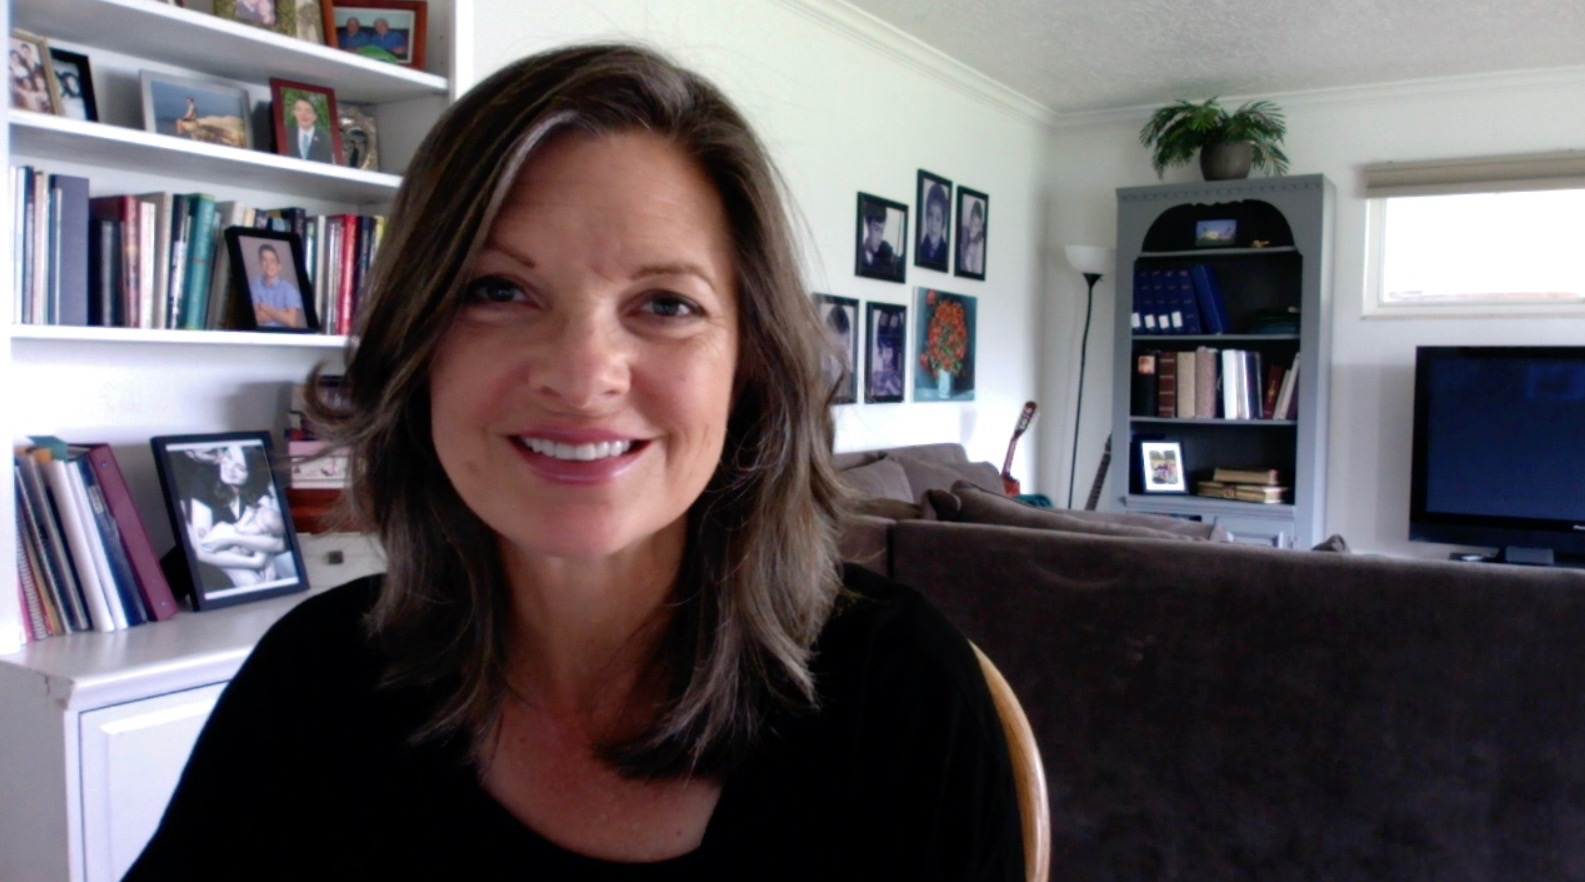 Kristin in her home recording a video with black top on